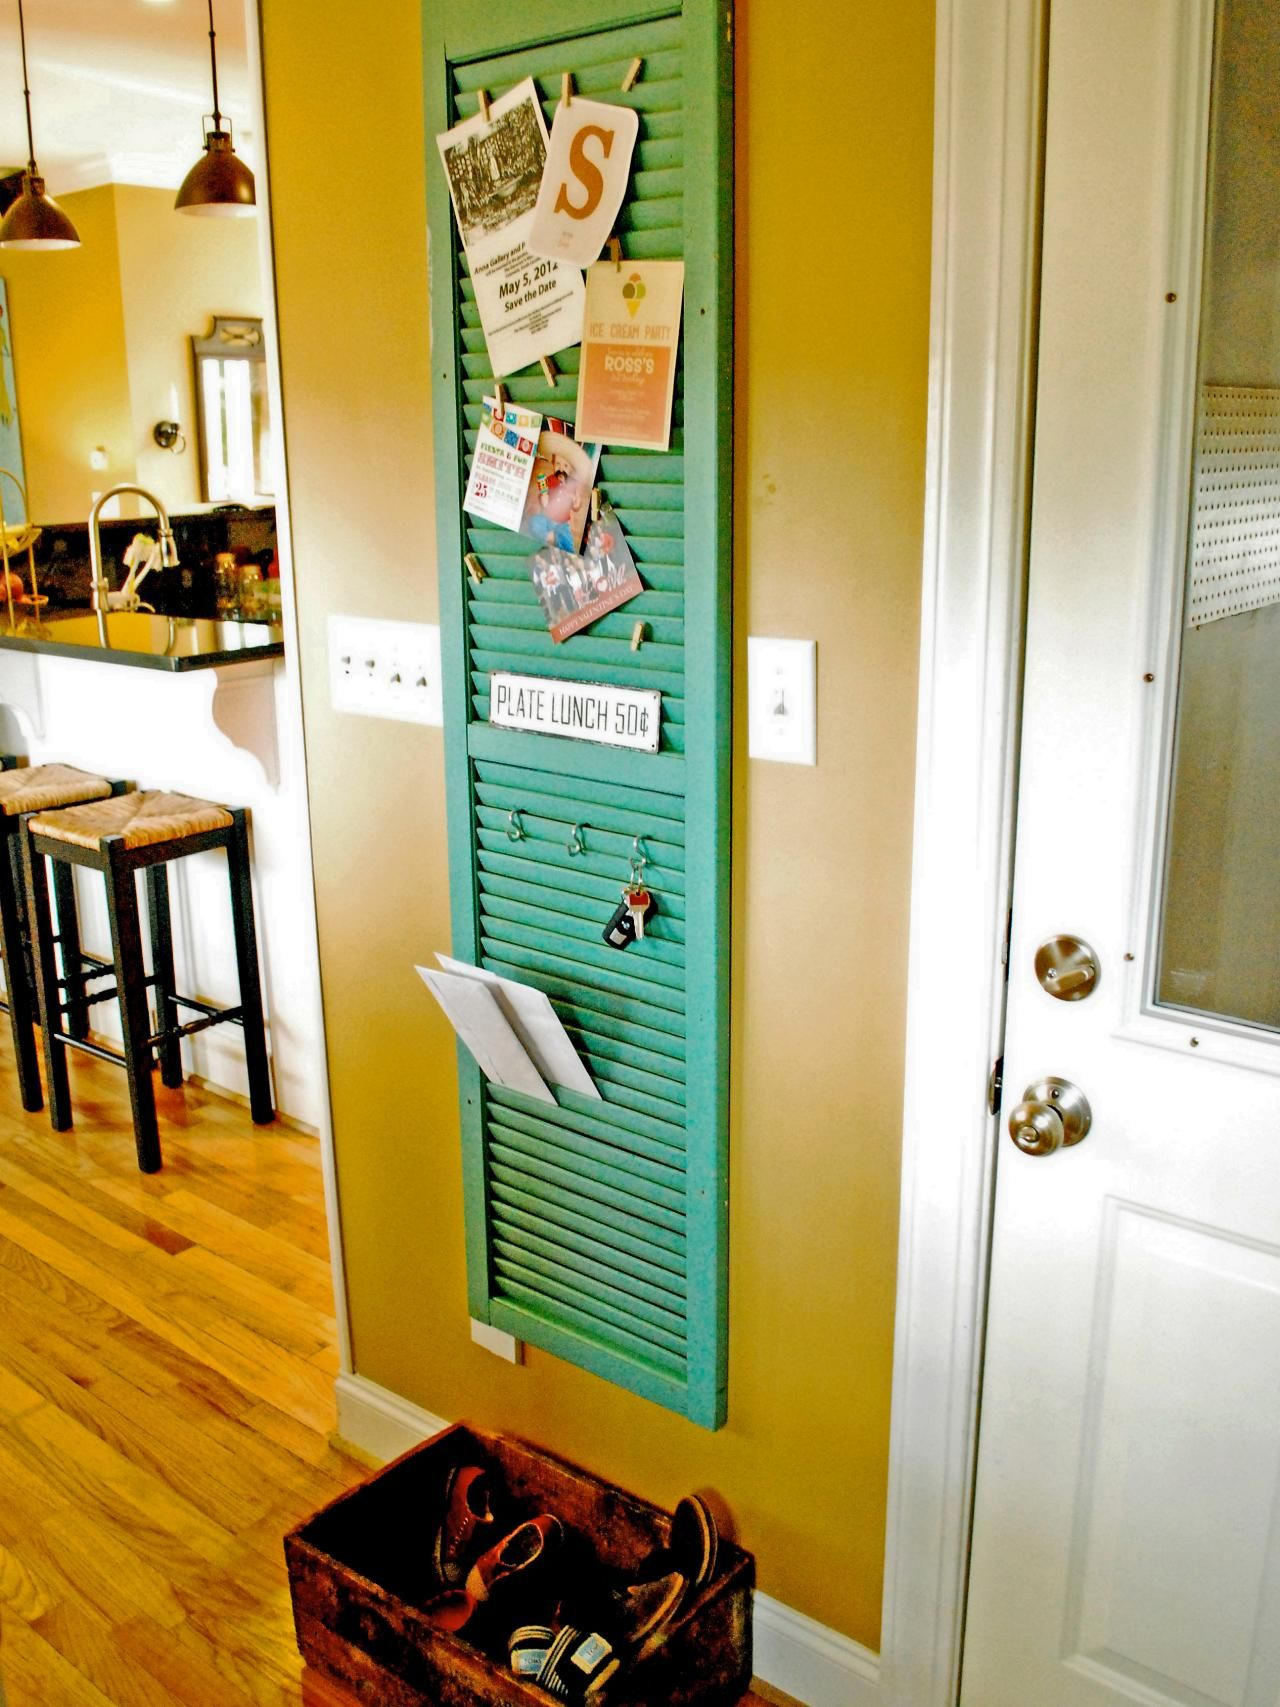 30 Great Ideas for Upcycled Storage | Hgtv, Decorating and Interiors